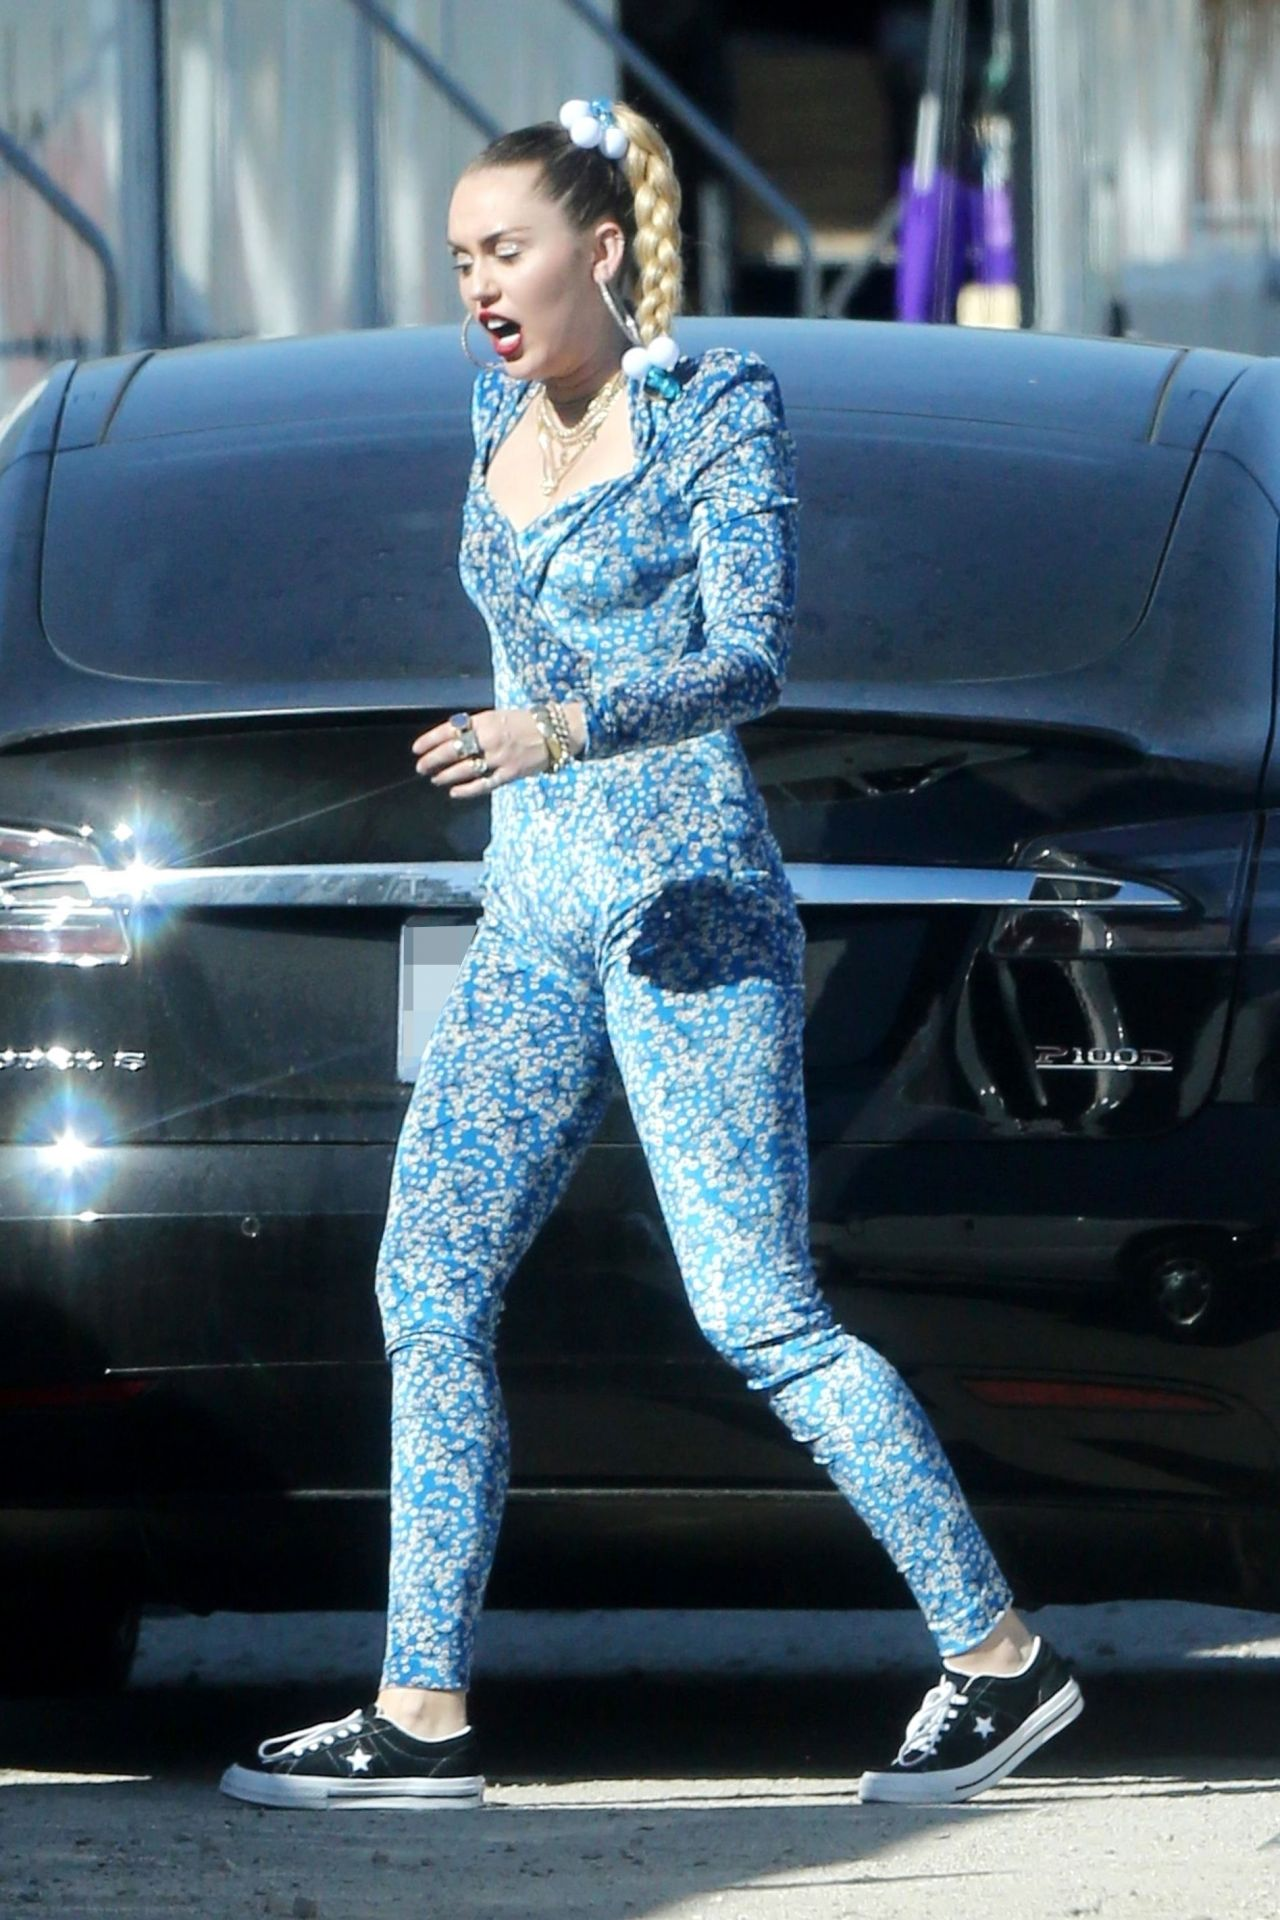 Miley Cyrus In A Blue Floral Jumpsuit On Set Of Her Latest